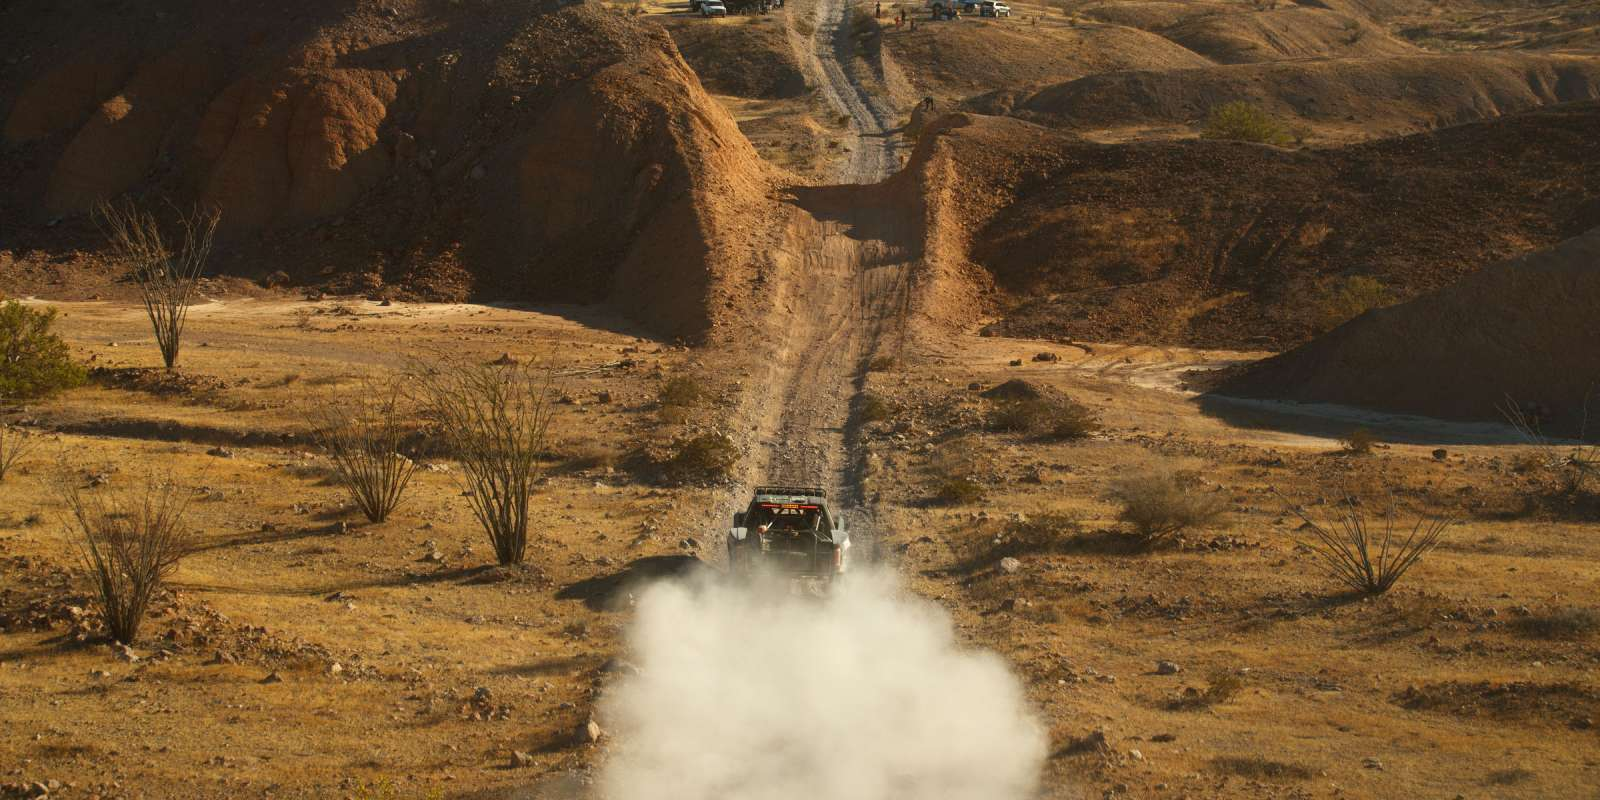 Monster athletes race at the 50th Annual Baja 1000 in Baja California